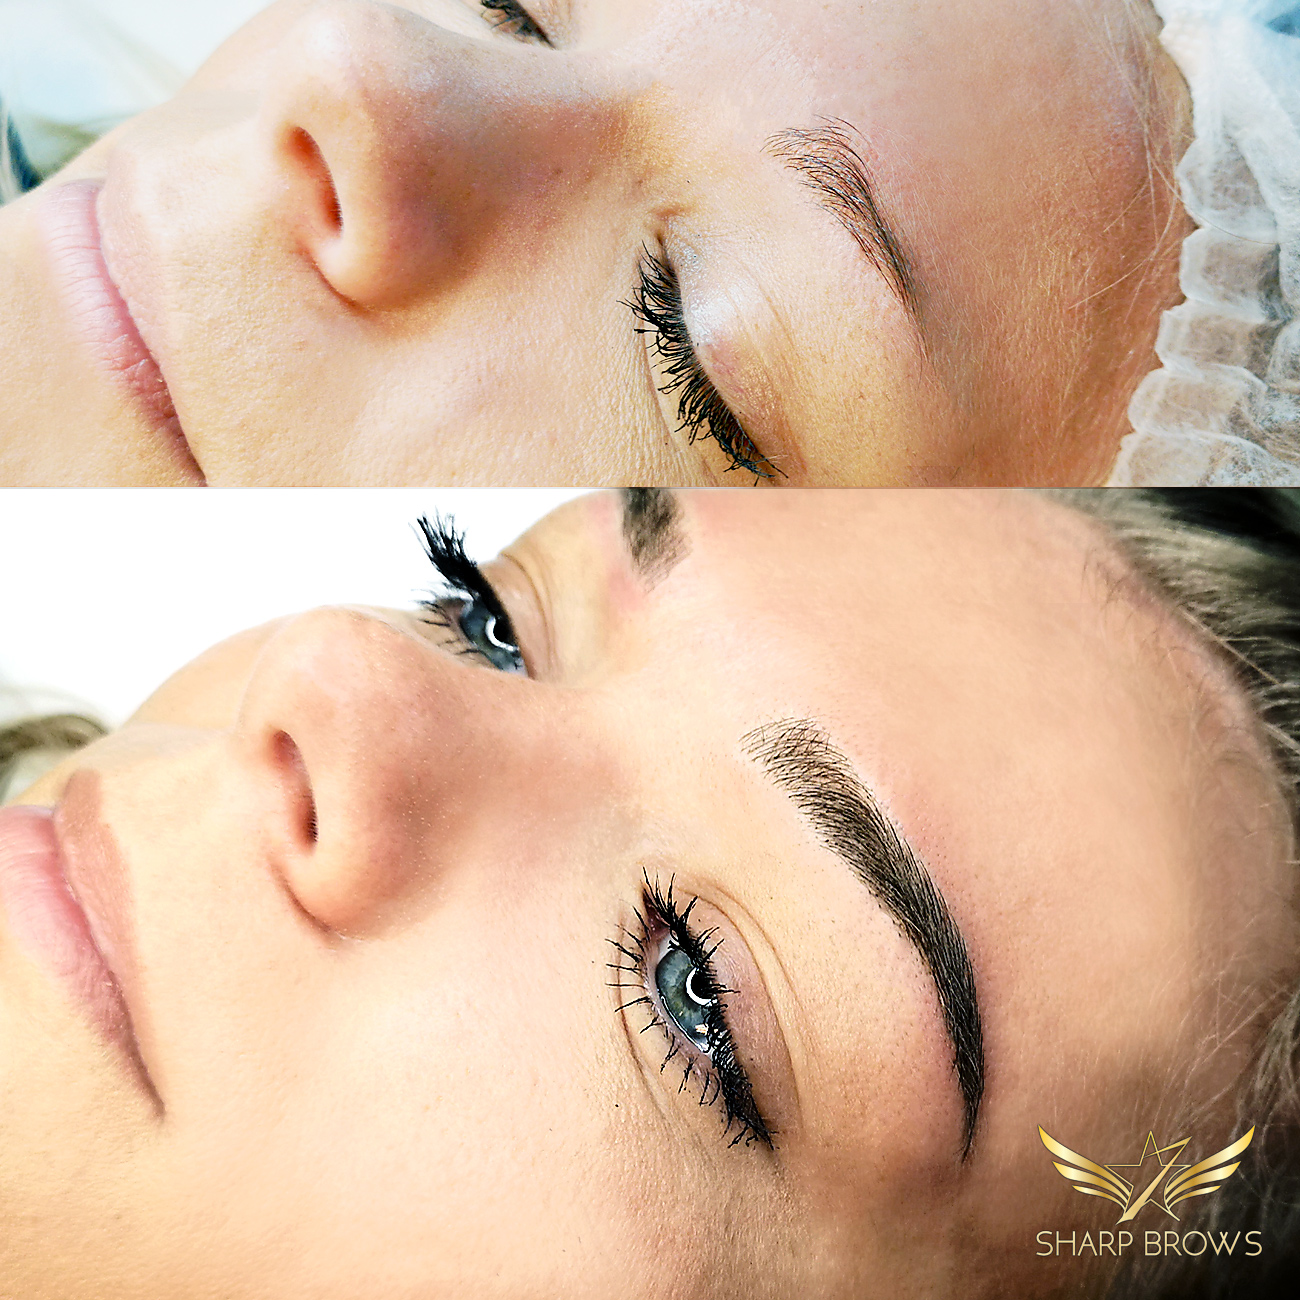 Light microblading - Incredible change. New brows created from practically absolutely nothing.